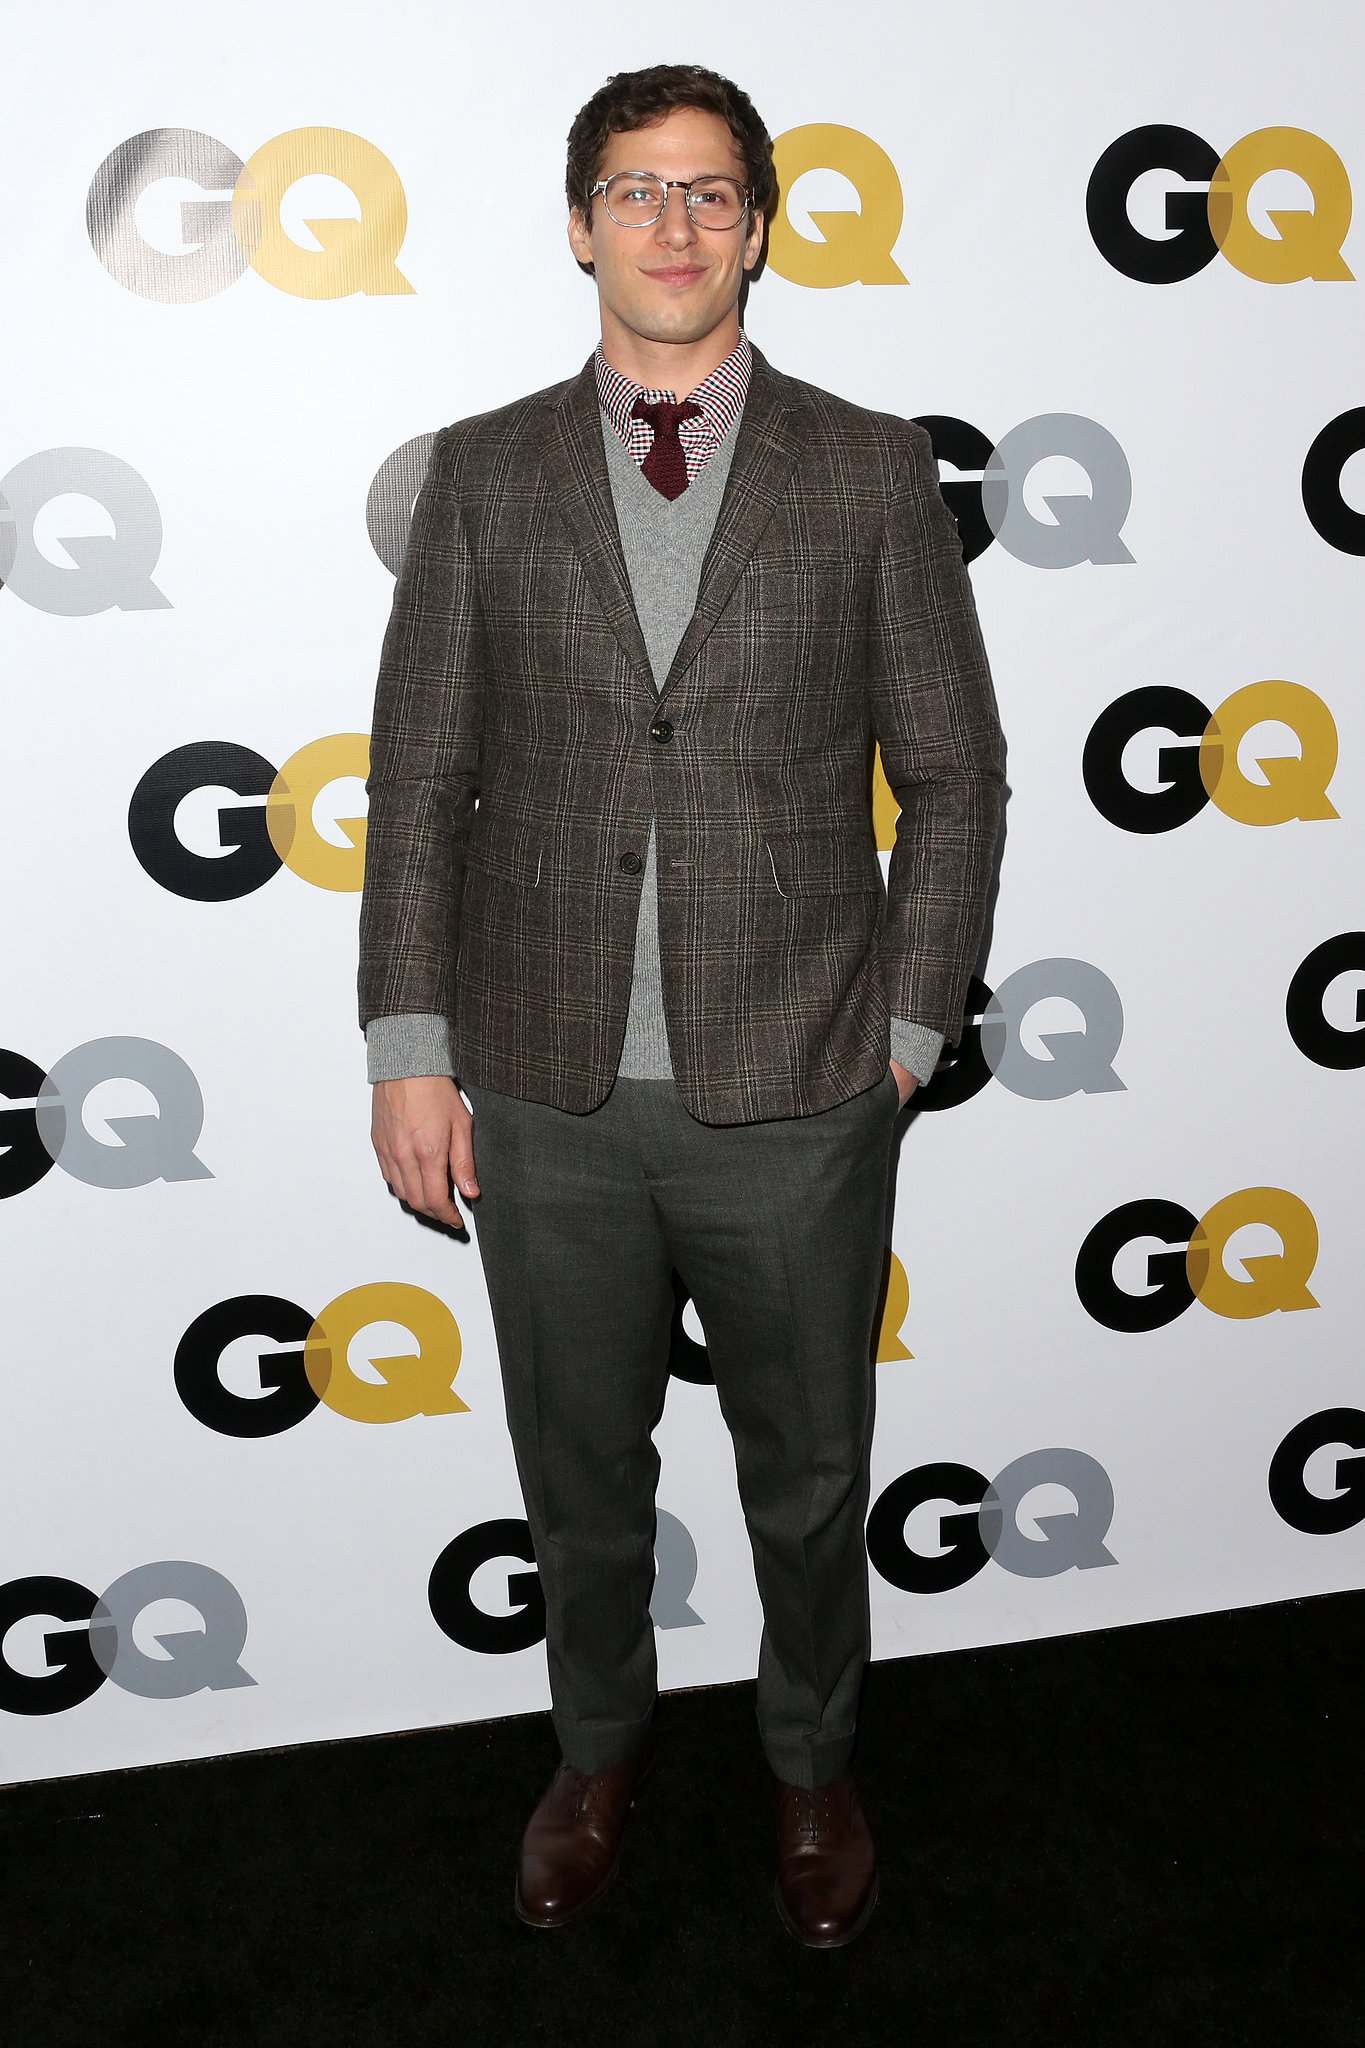 Andy Samberg arrived in a plaid jacket for the GQ Men Of The Year party.